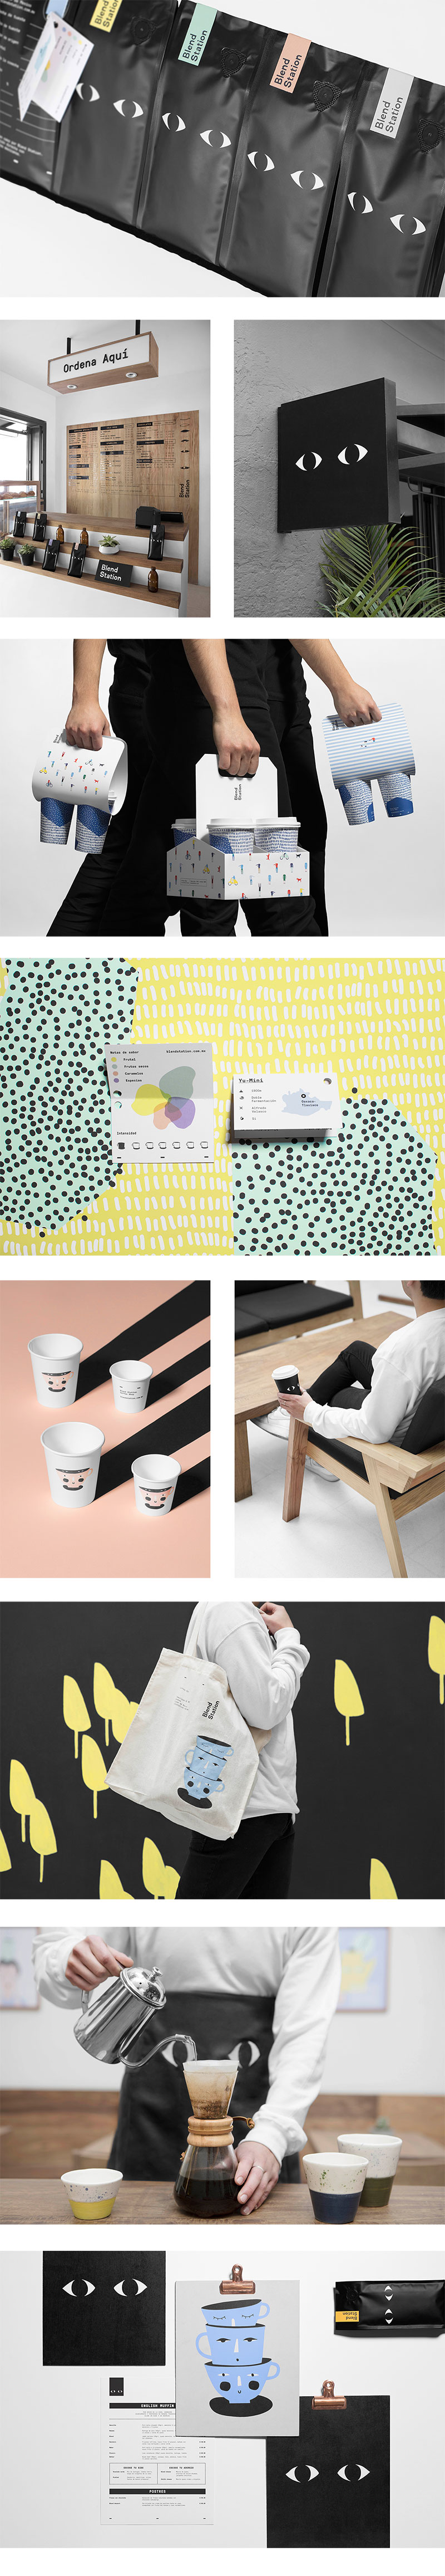 Blend Station by Futura